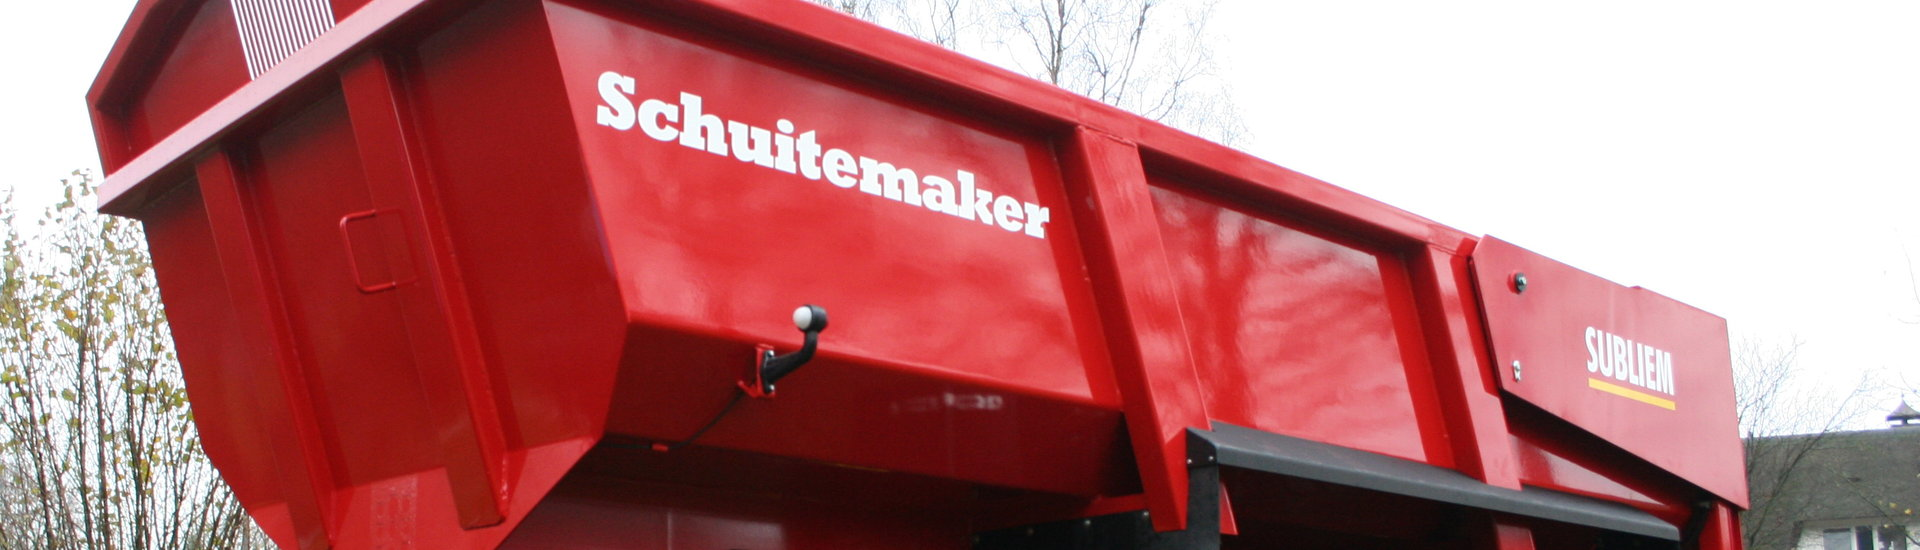 Schuitemaker Subliem transport tipper